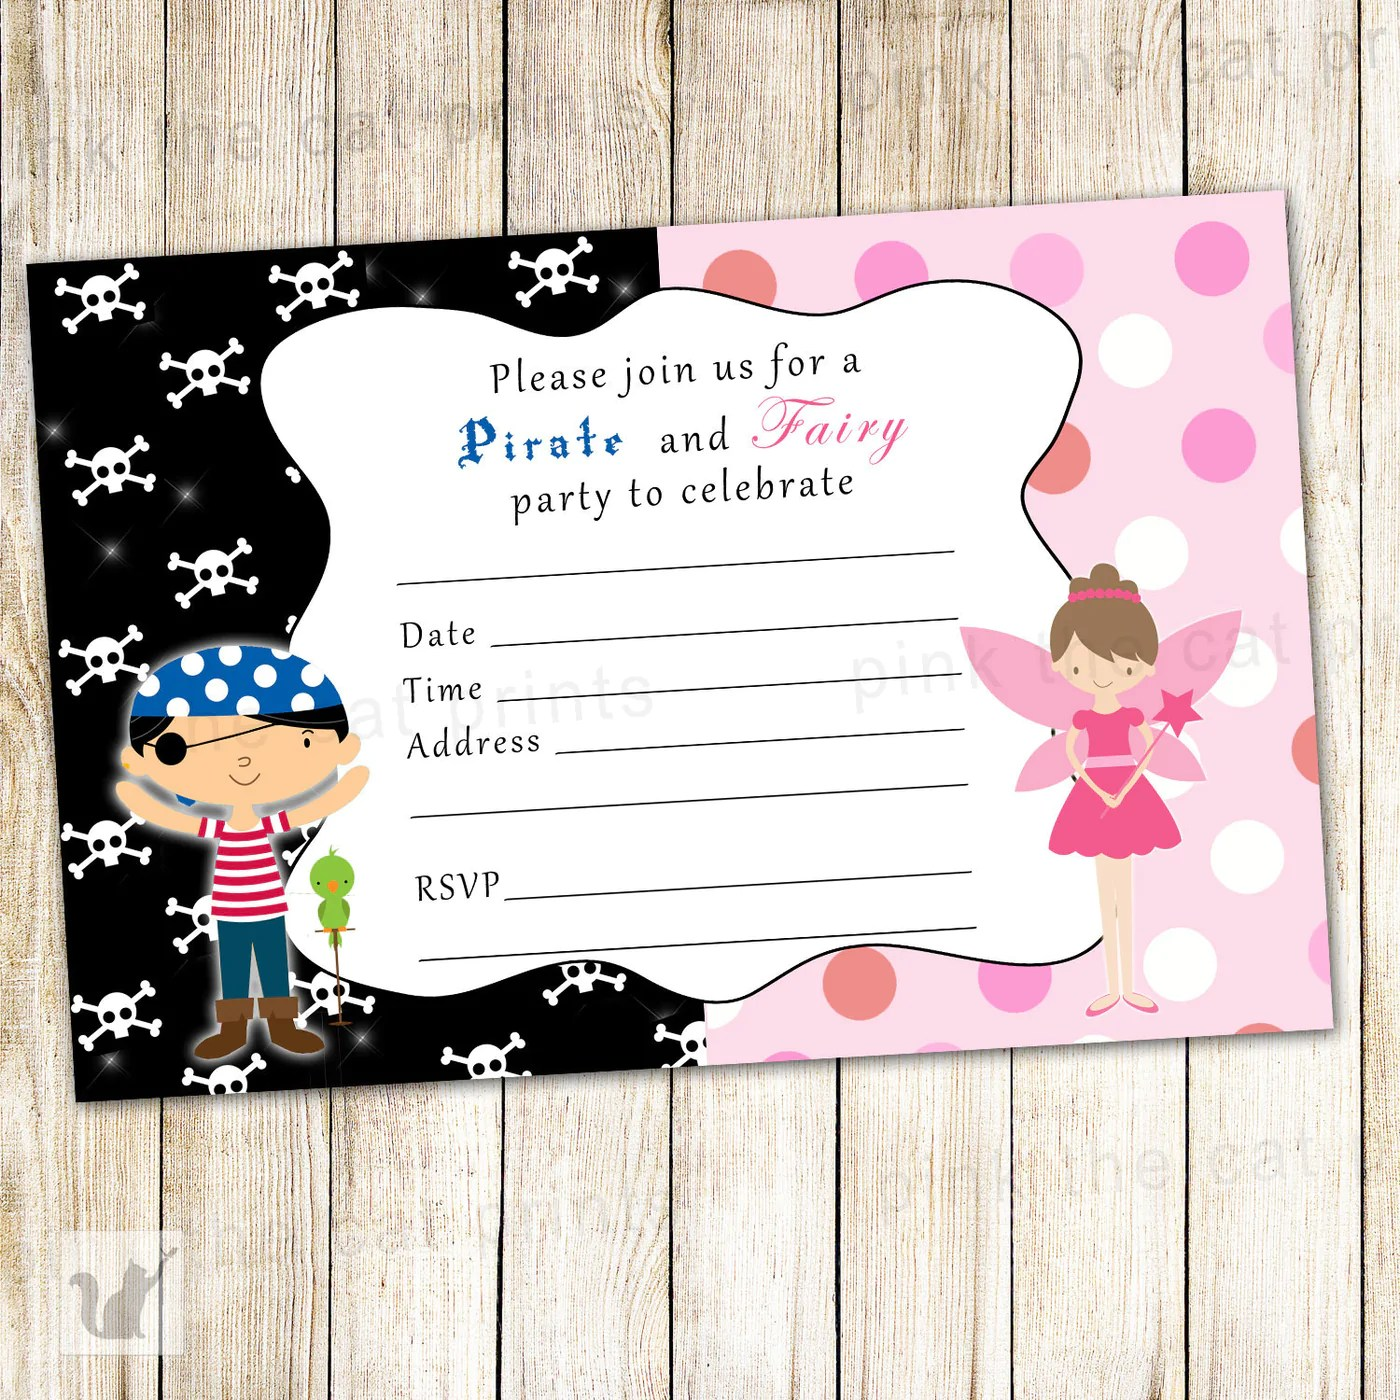 fairy pirate invitation fill in blank pixie kids birthday